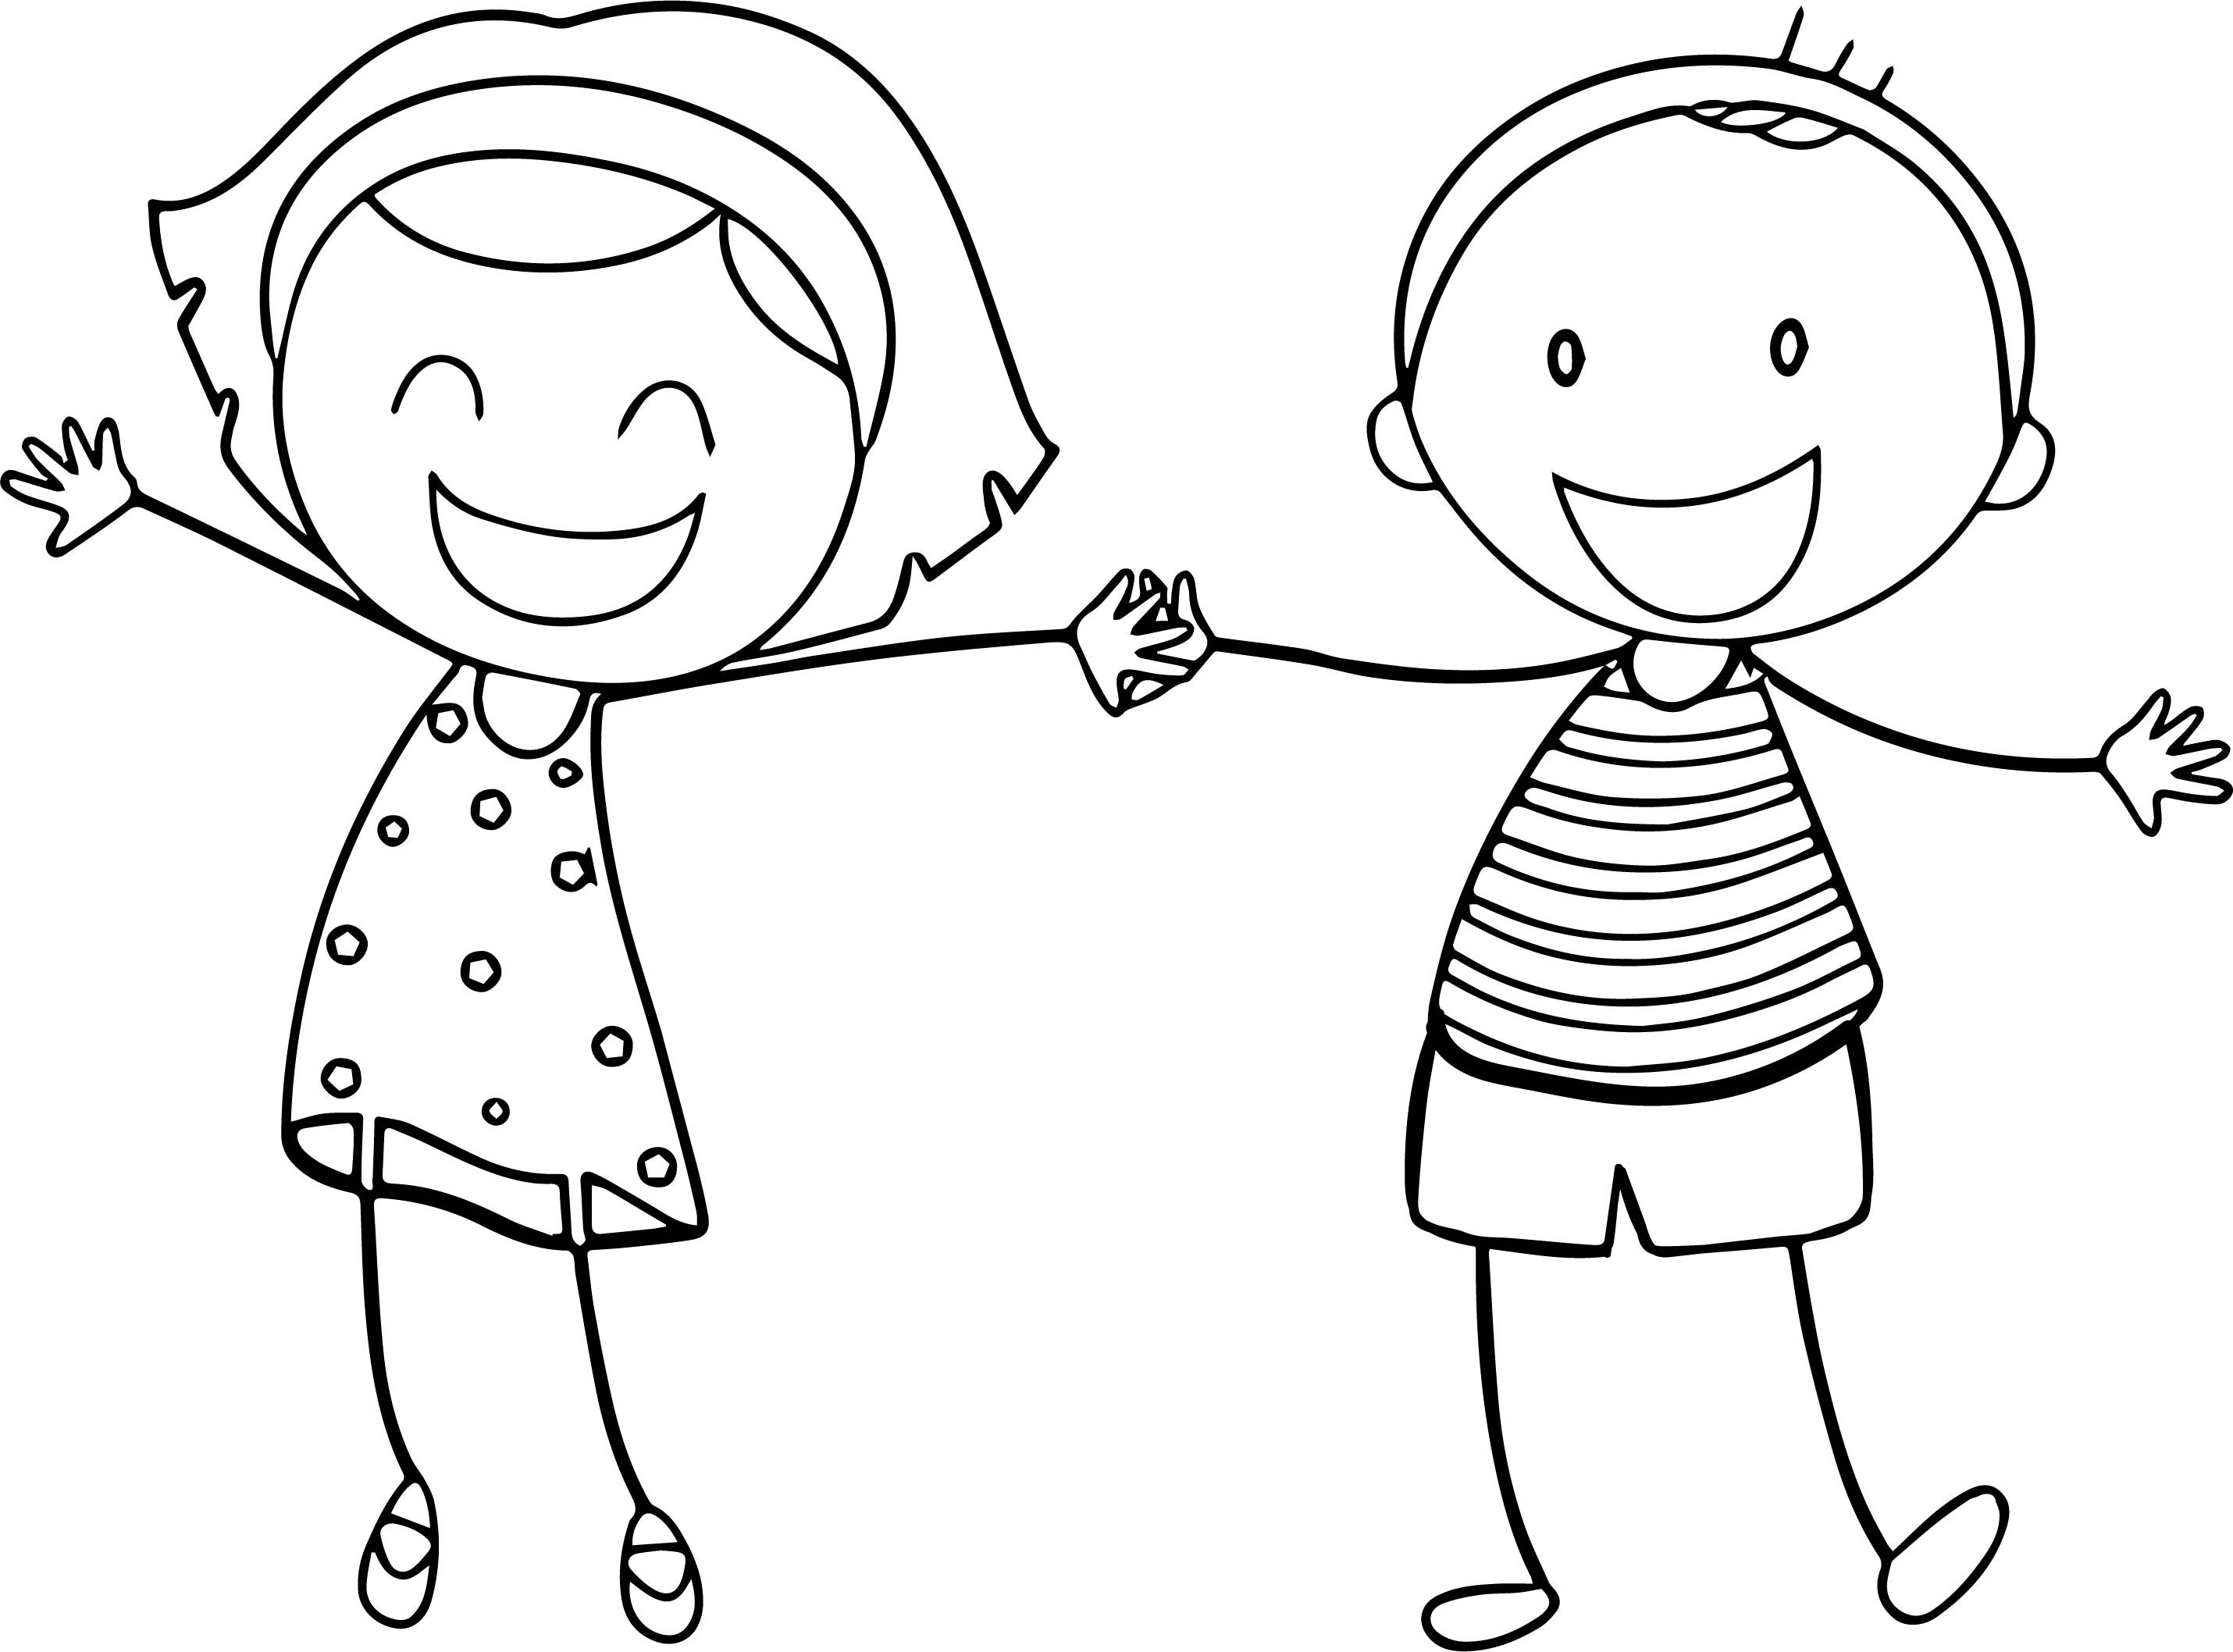 Free Printable Coloring Pages For Girls And Boys  fun coloring pages for boys and girls basic funny boy girl